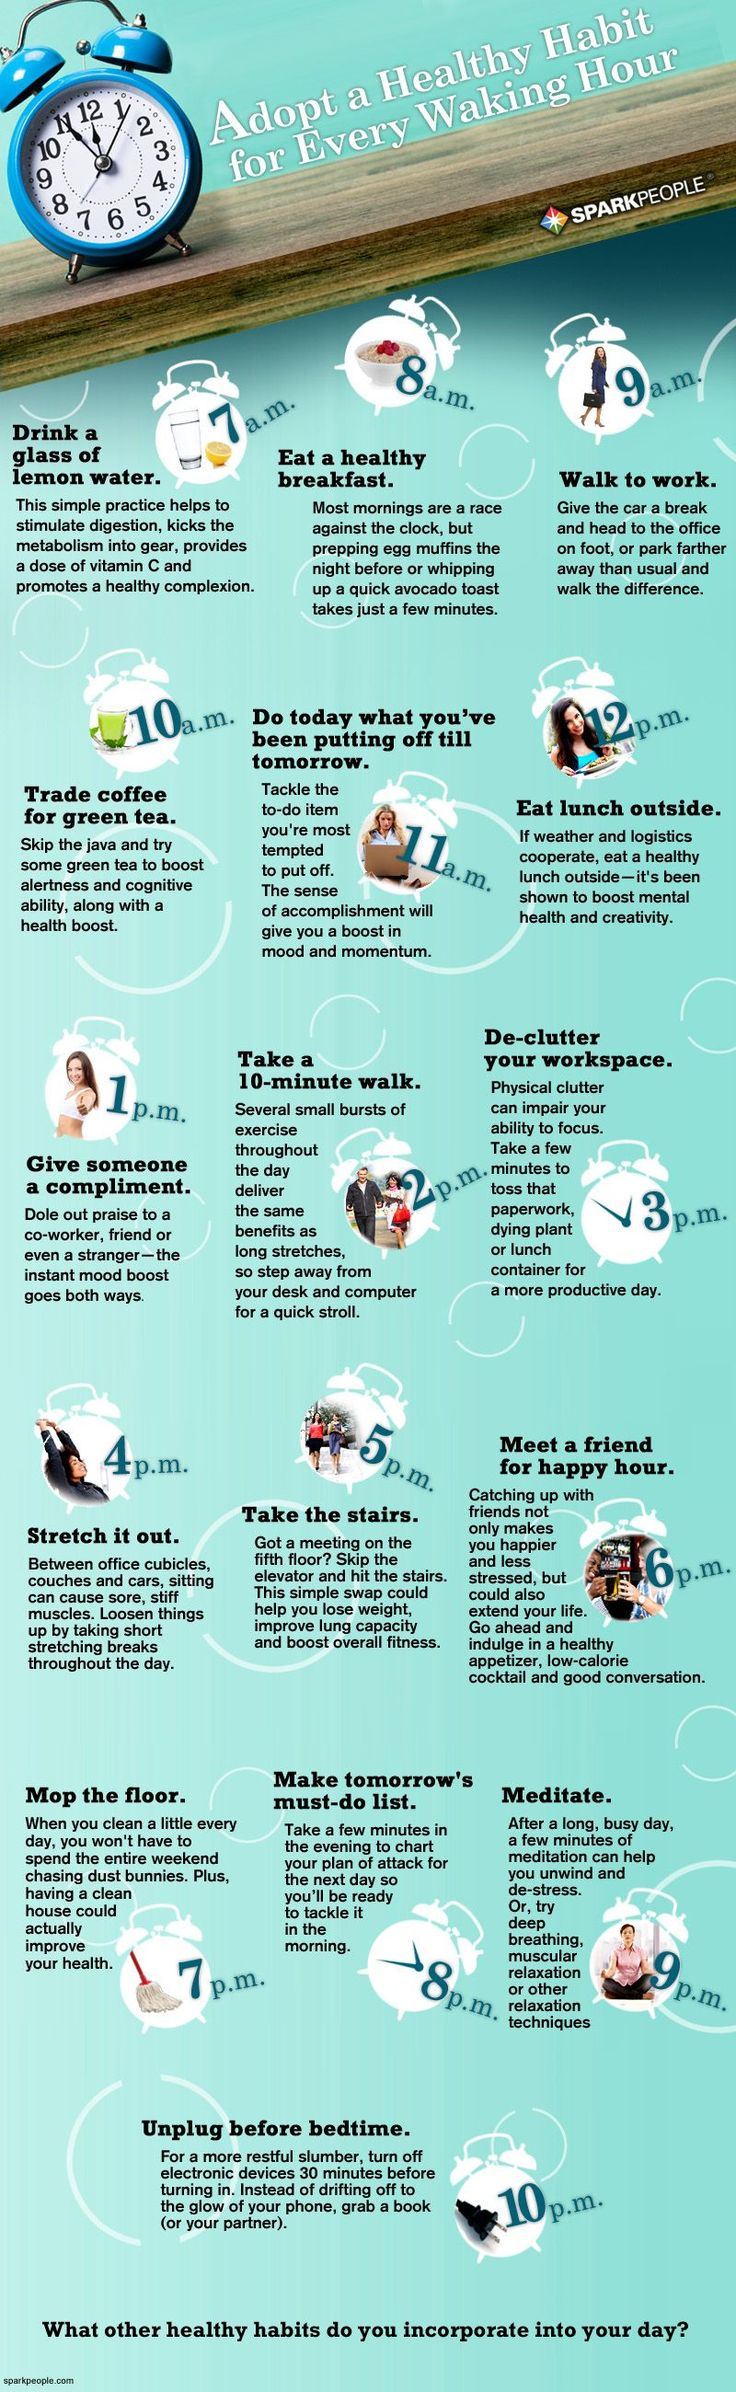 Adopt a healthy habit for every hour you're awake. From 7 a.m. to 10 p.m., it's the little things you do that really make your overall lifestyle healthy. From home to office, try these tips for every waking hour.